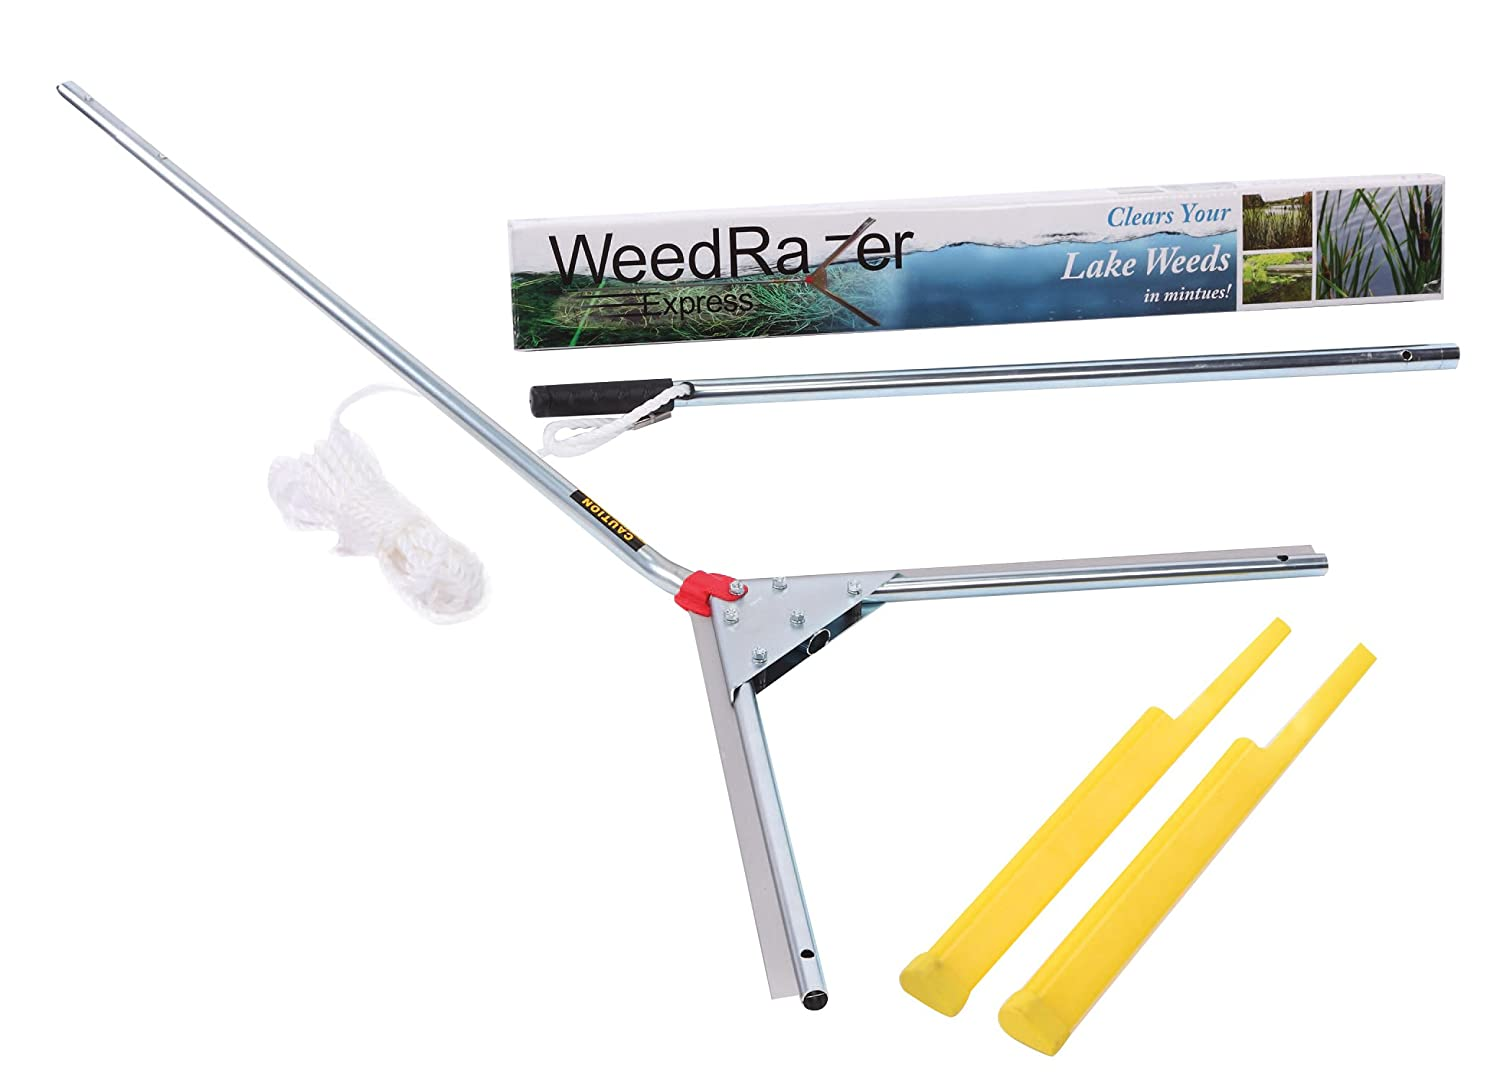 Weed Razer Jenlis Express, Aquatic Weed Cutter for Lakes, Ponds & Beaches